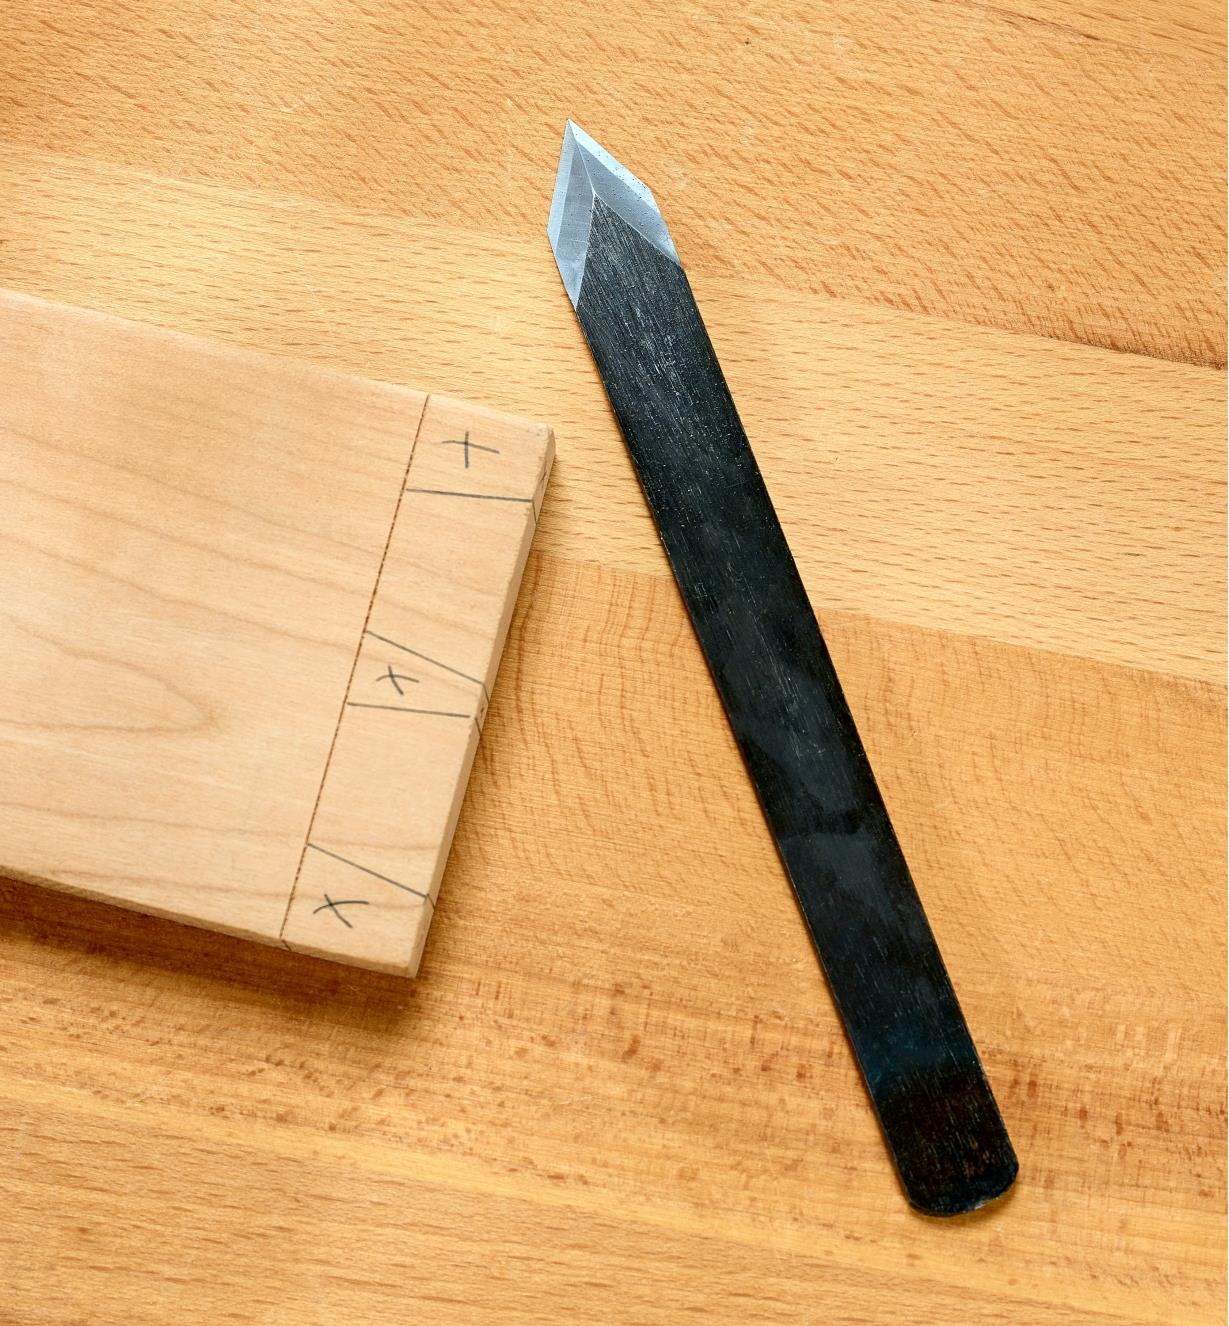 Japanese spear-point marking knife on a workbench beside a piece marked for cutting dovetails